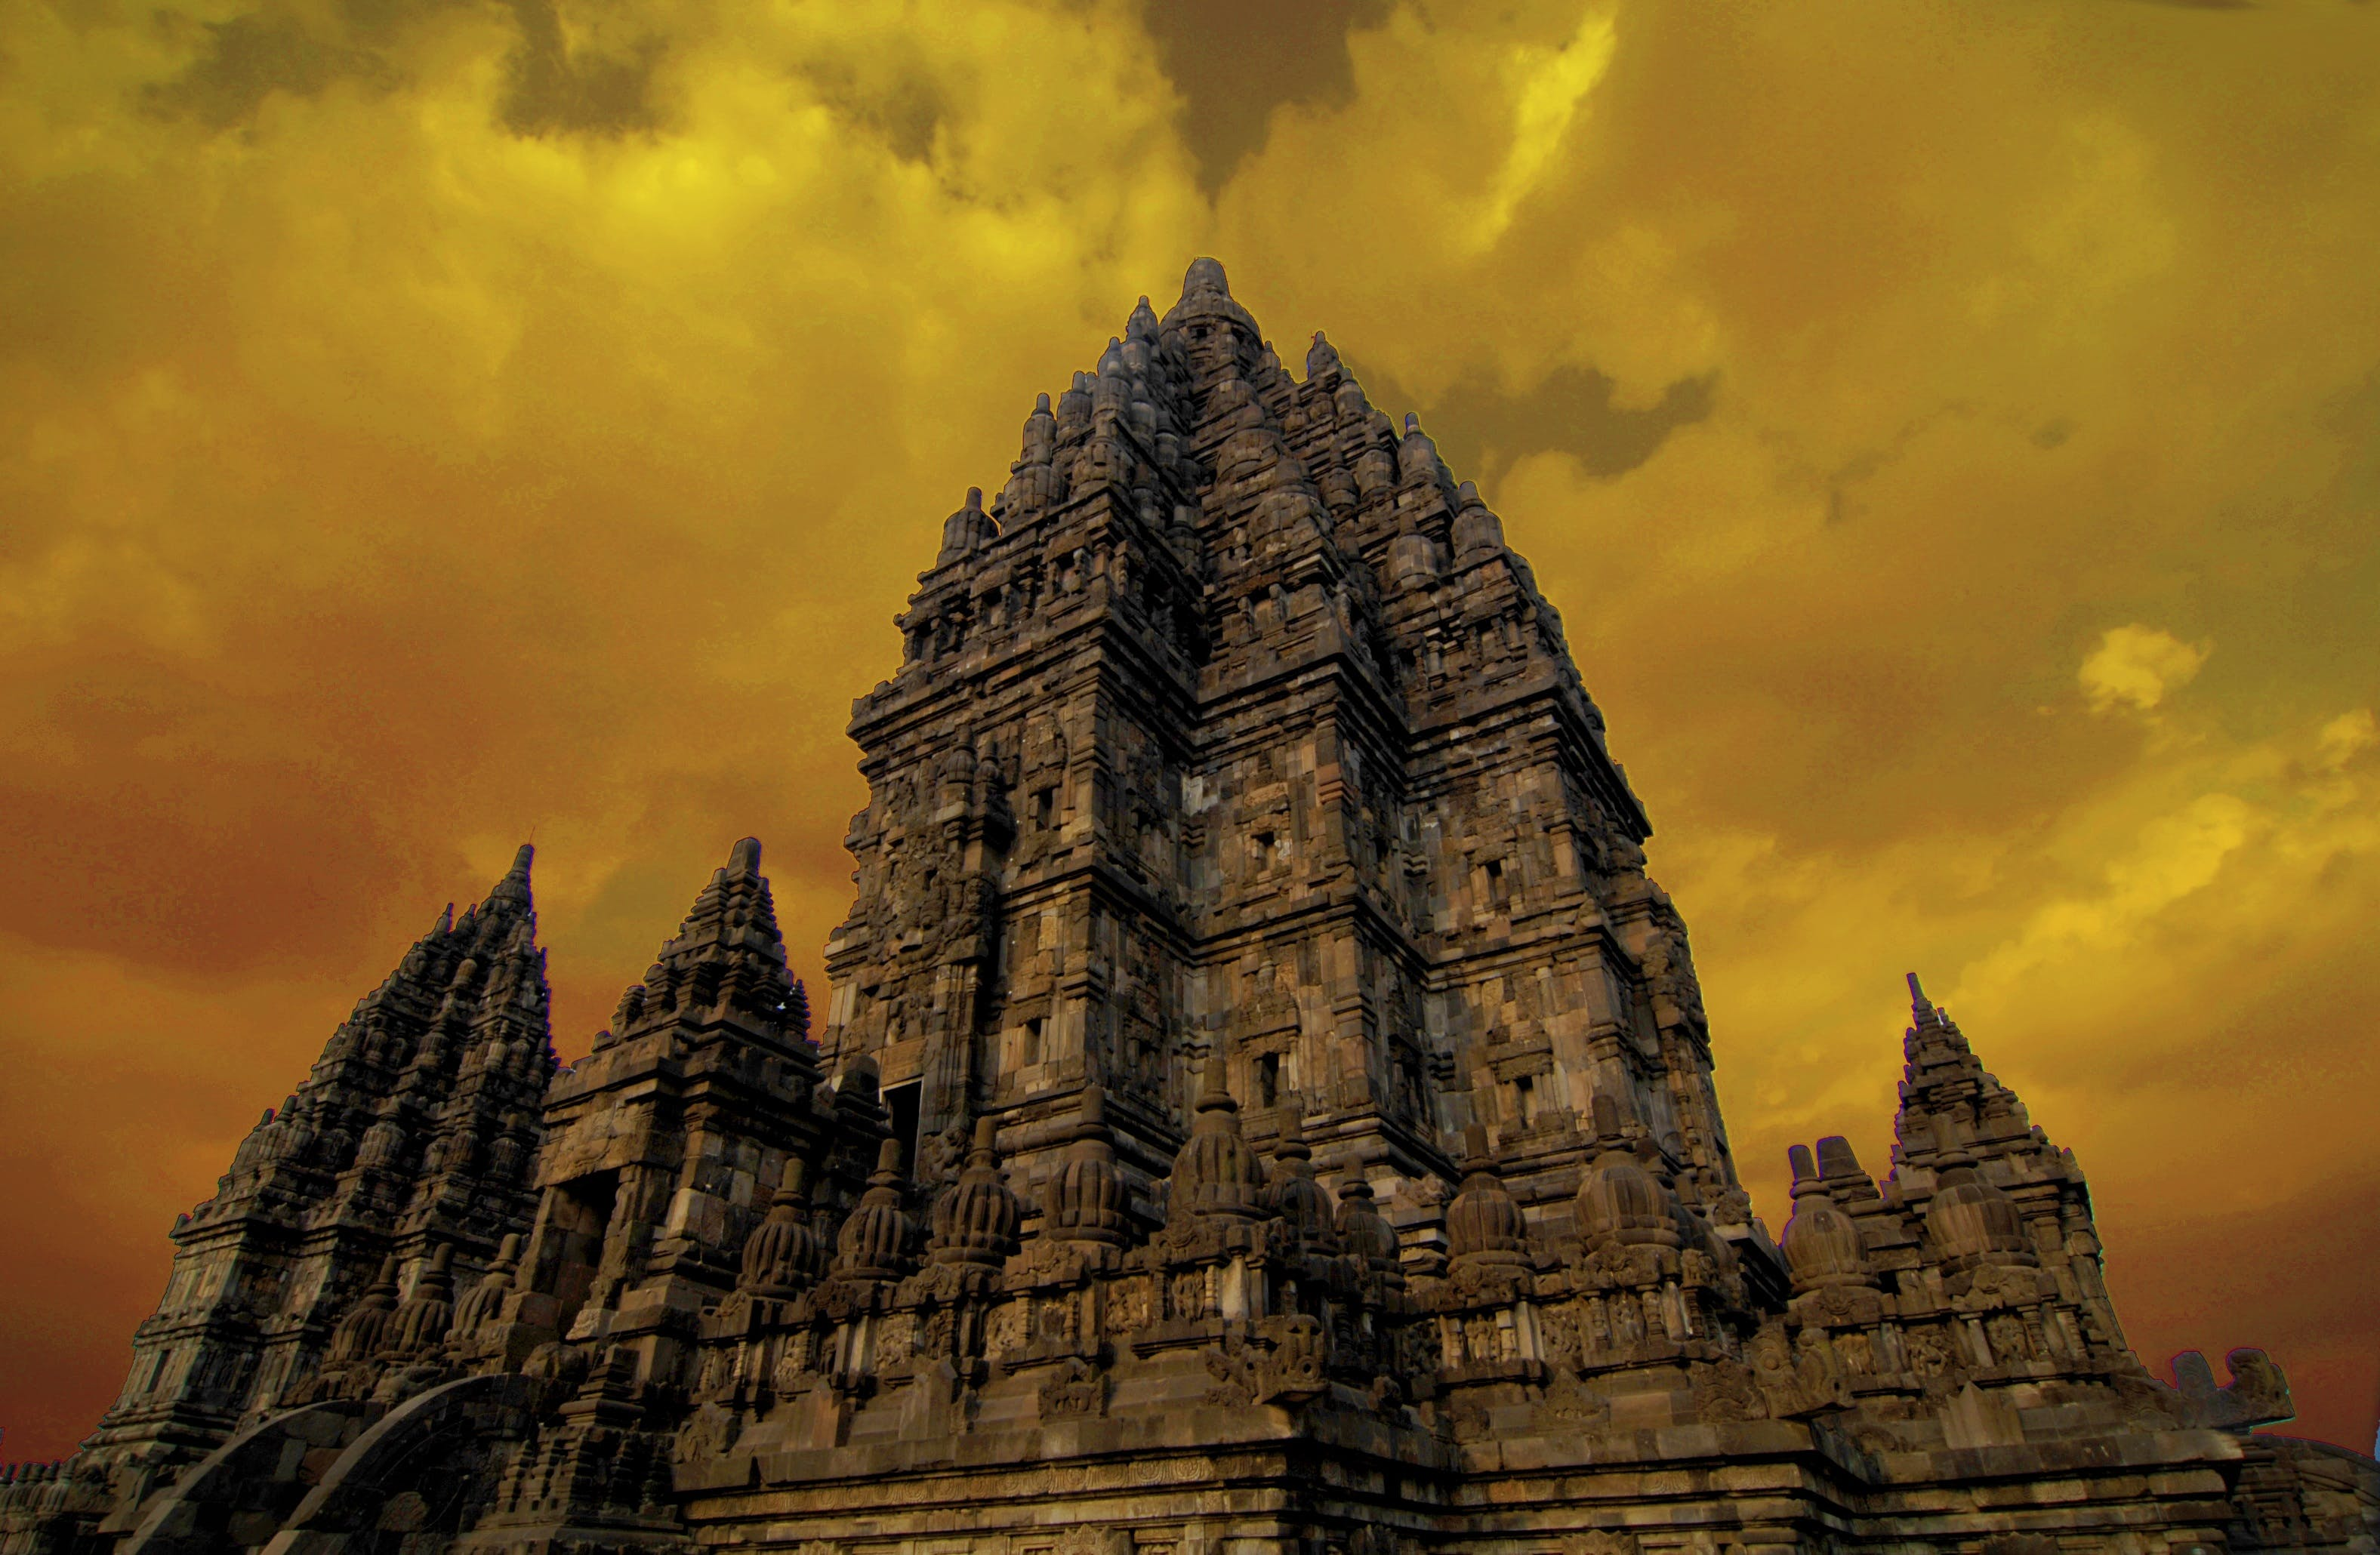 Low Angle View of Ankor Wat